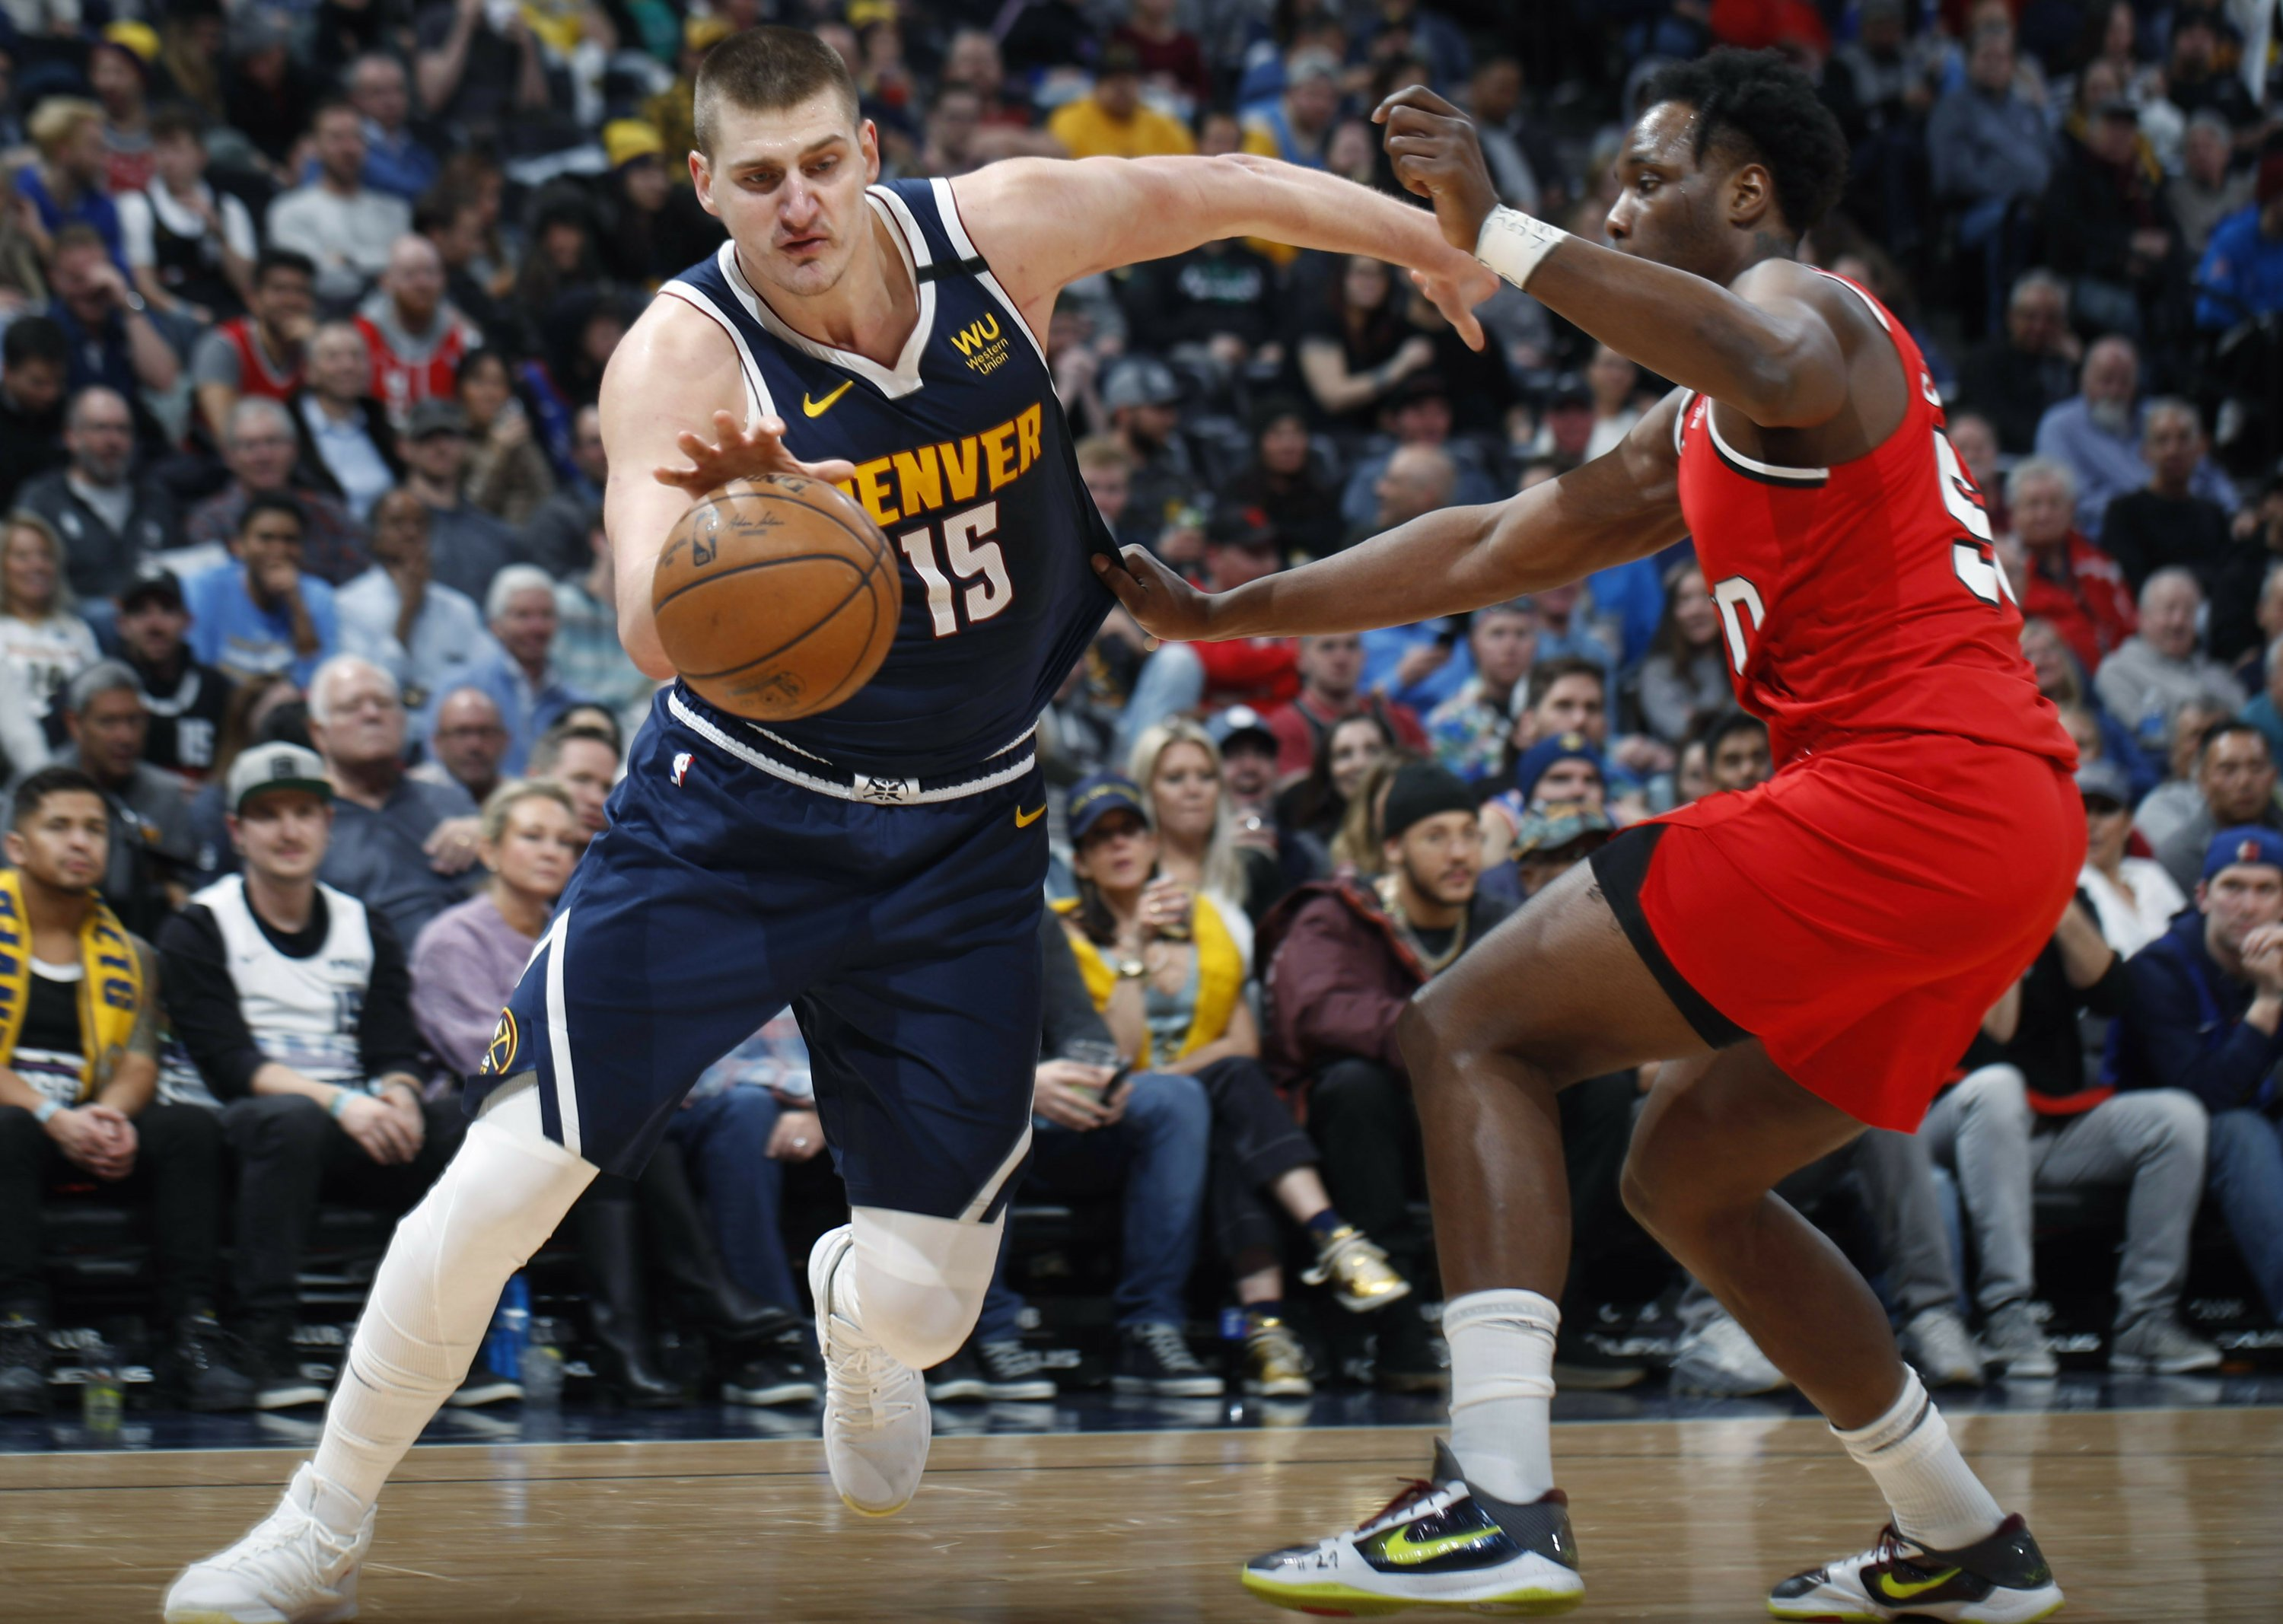 Leaner Version Of Jokic Ready To Carry Load For Nuggets